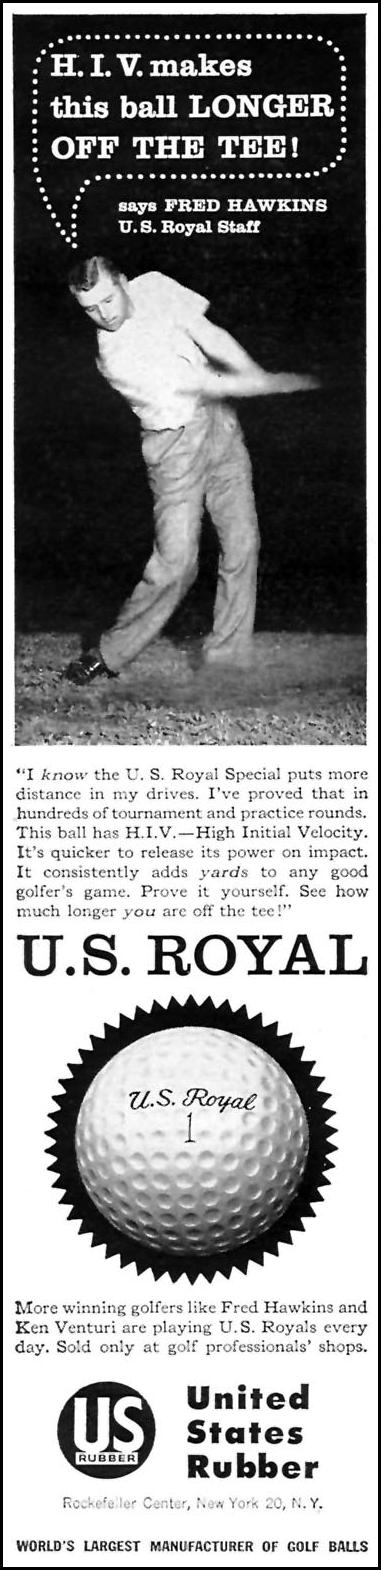 U. S. ROYAL GOLF BALLS SPORTS ILLUSTRATED 05/25/1959 p. 70